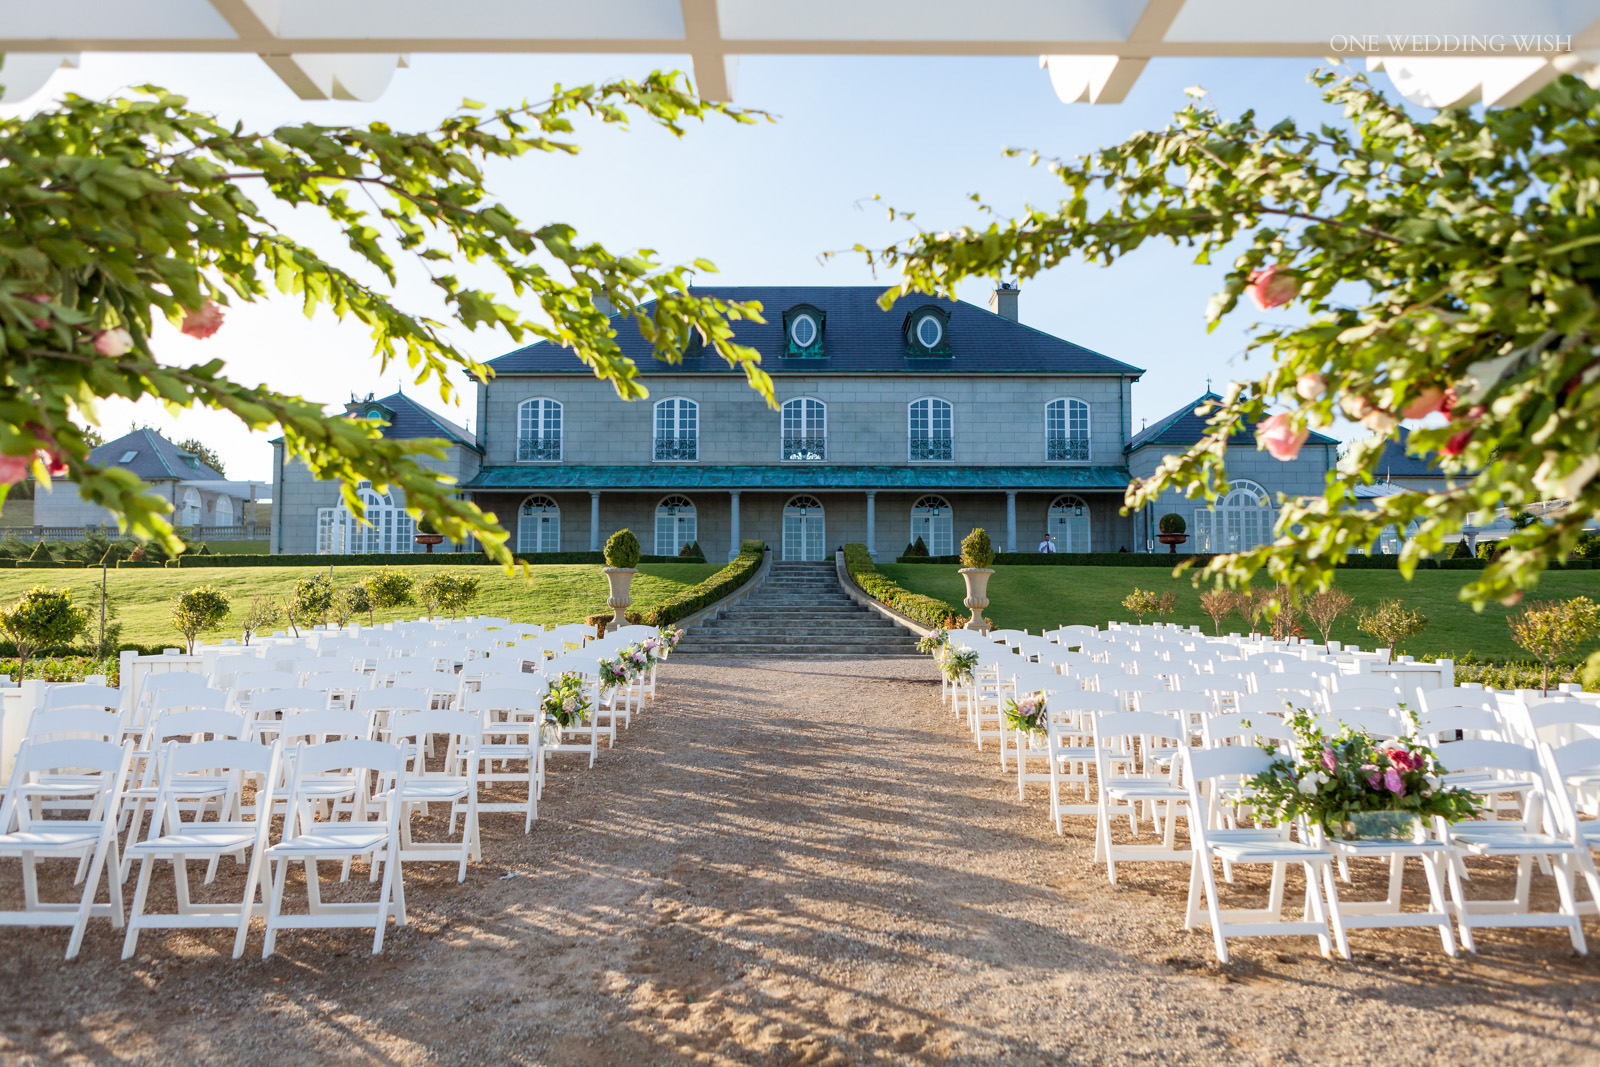 Campbell Point House weddings